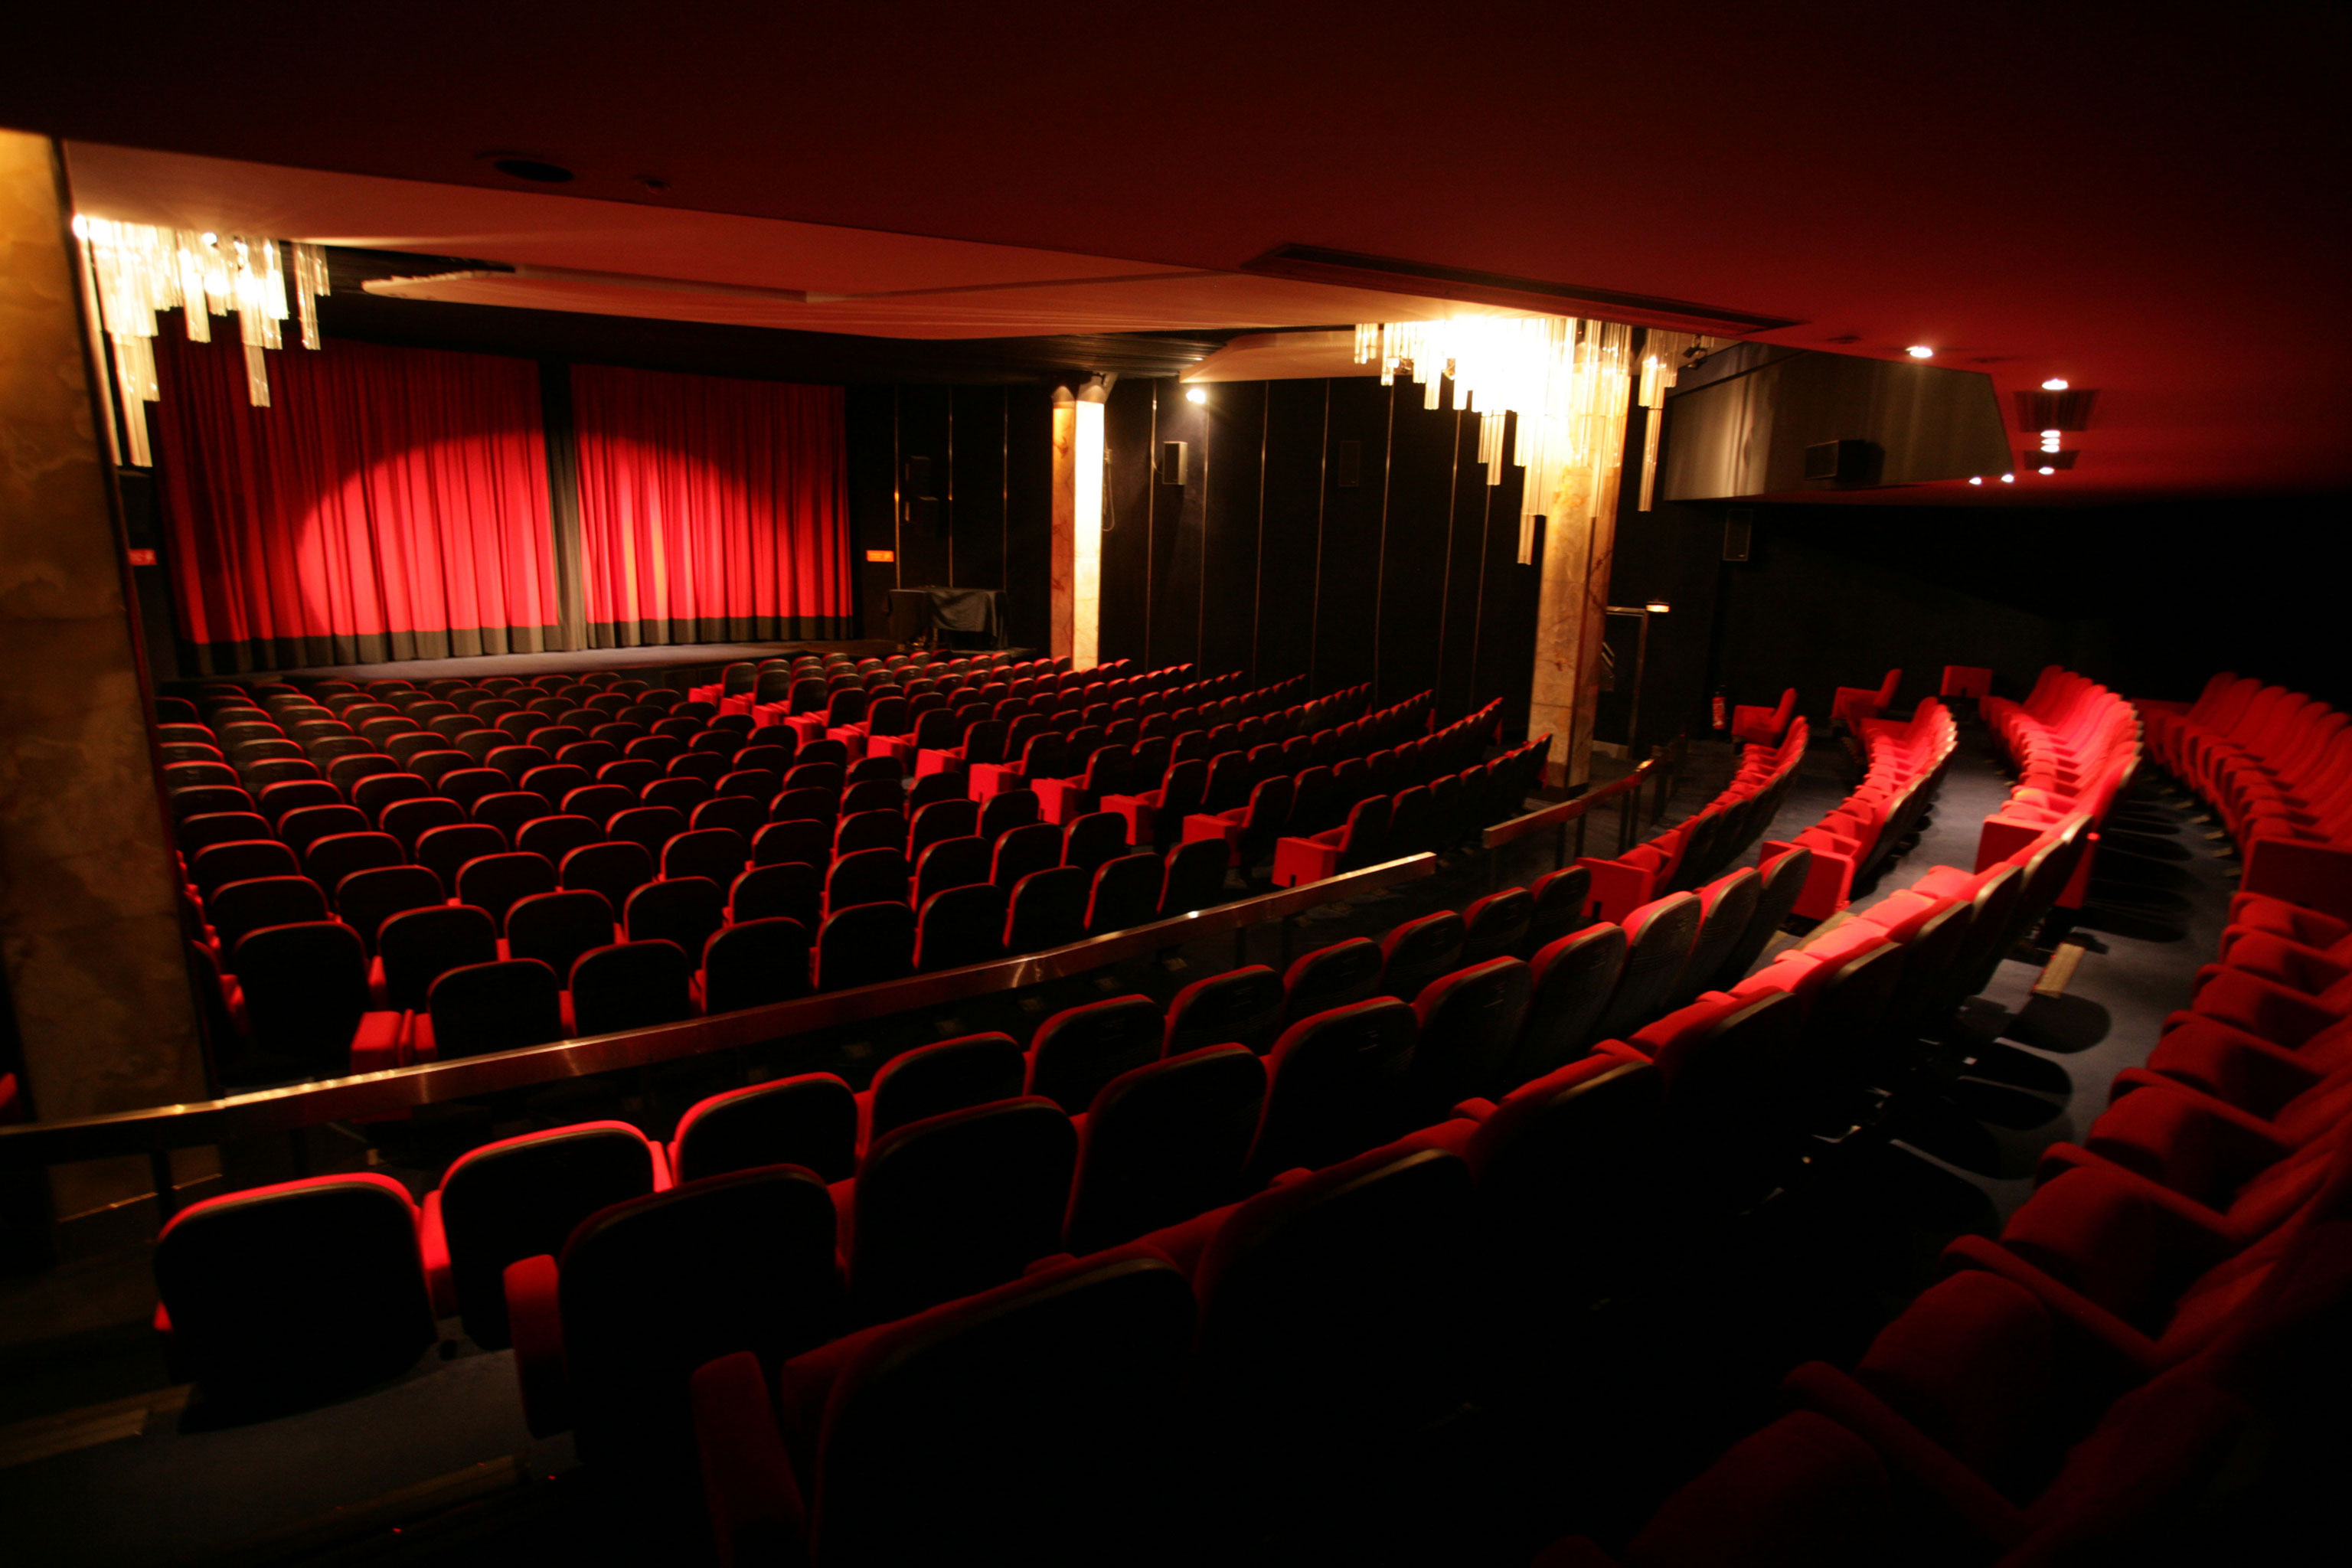 Le Balzac cinema, Paris